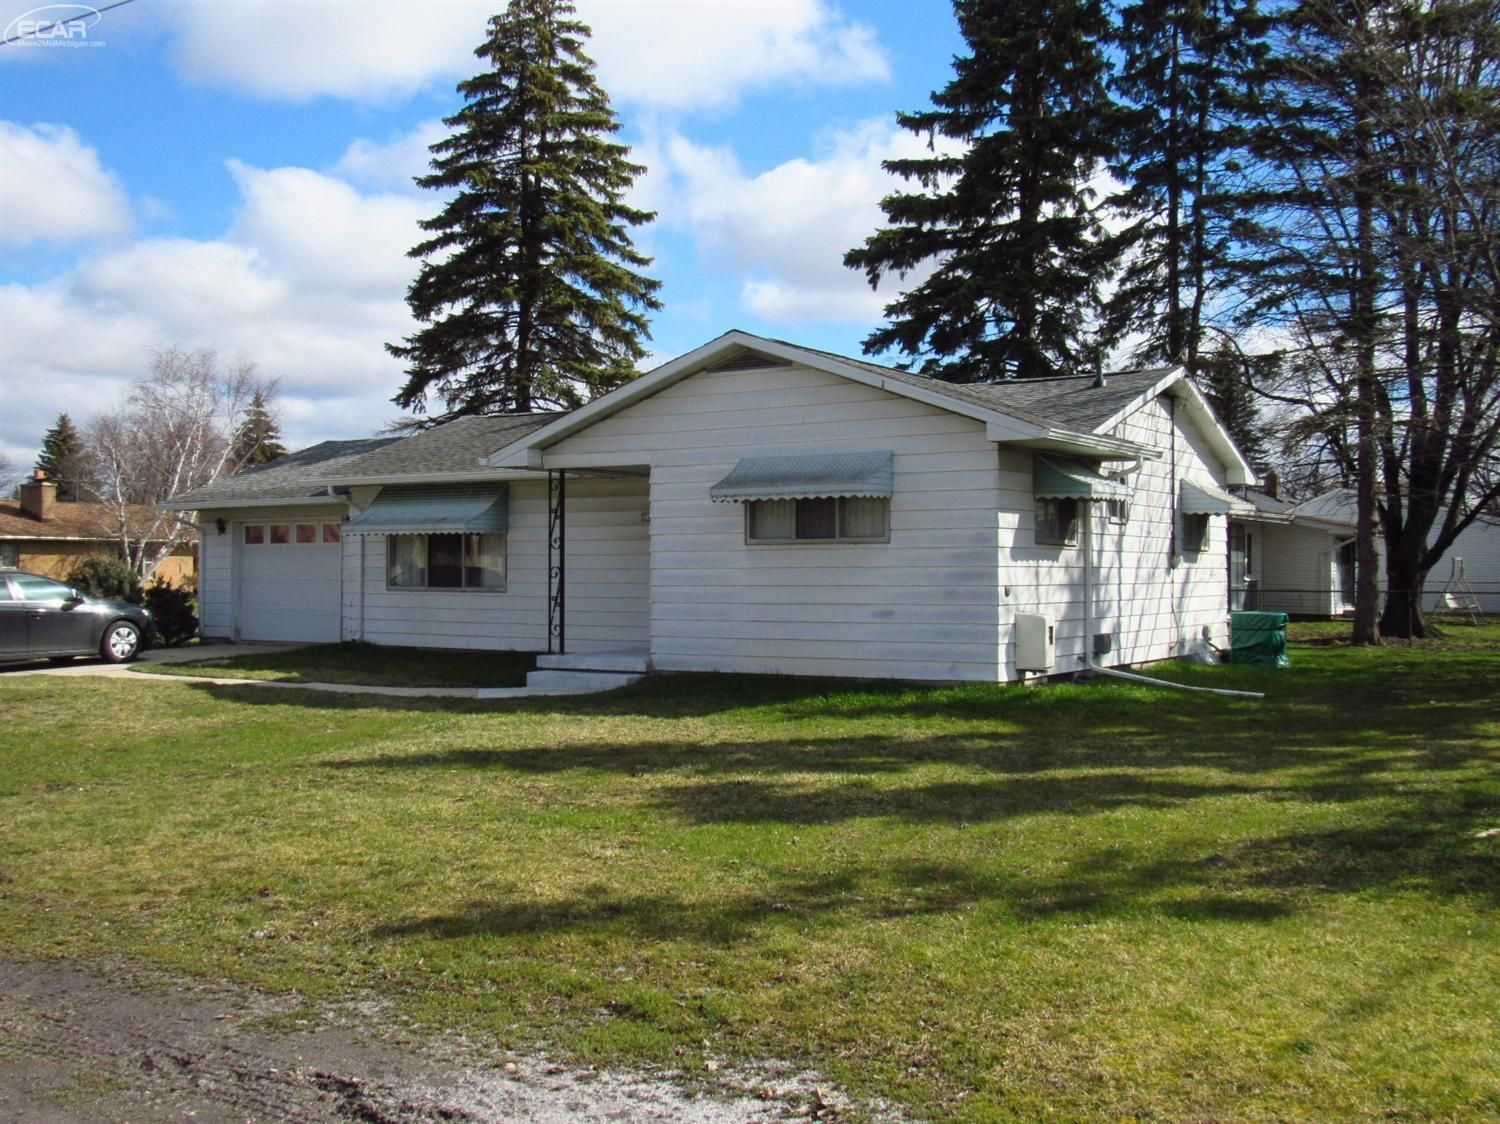 3350 Bauer Dr. Saginaw, MI for sale at $49,900.  2 bedroom home has updated roof, sump pump, water tank, electrical, and foundation.  #forsale #saginawhomes #openhouse #realestate